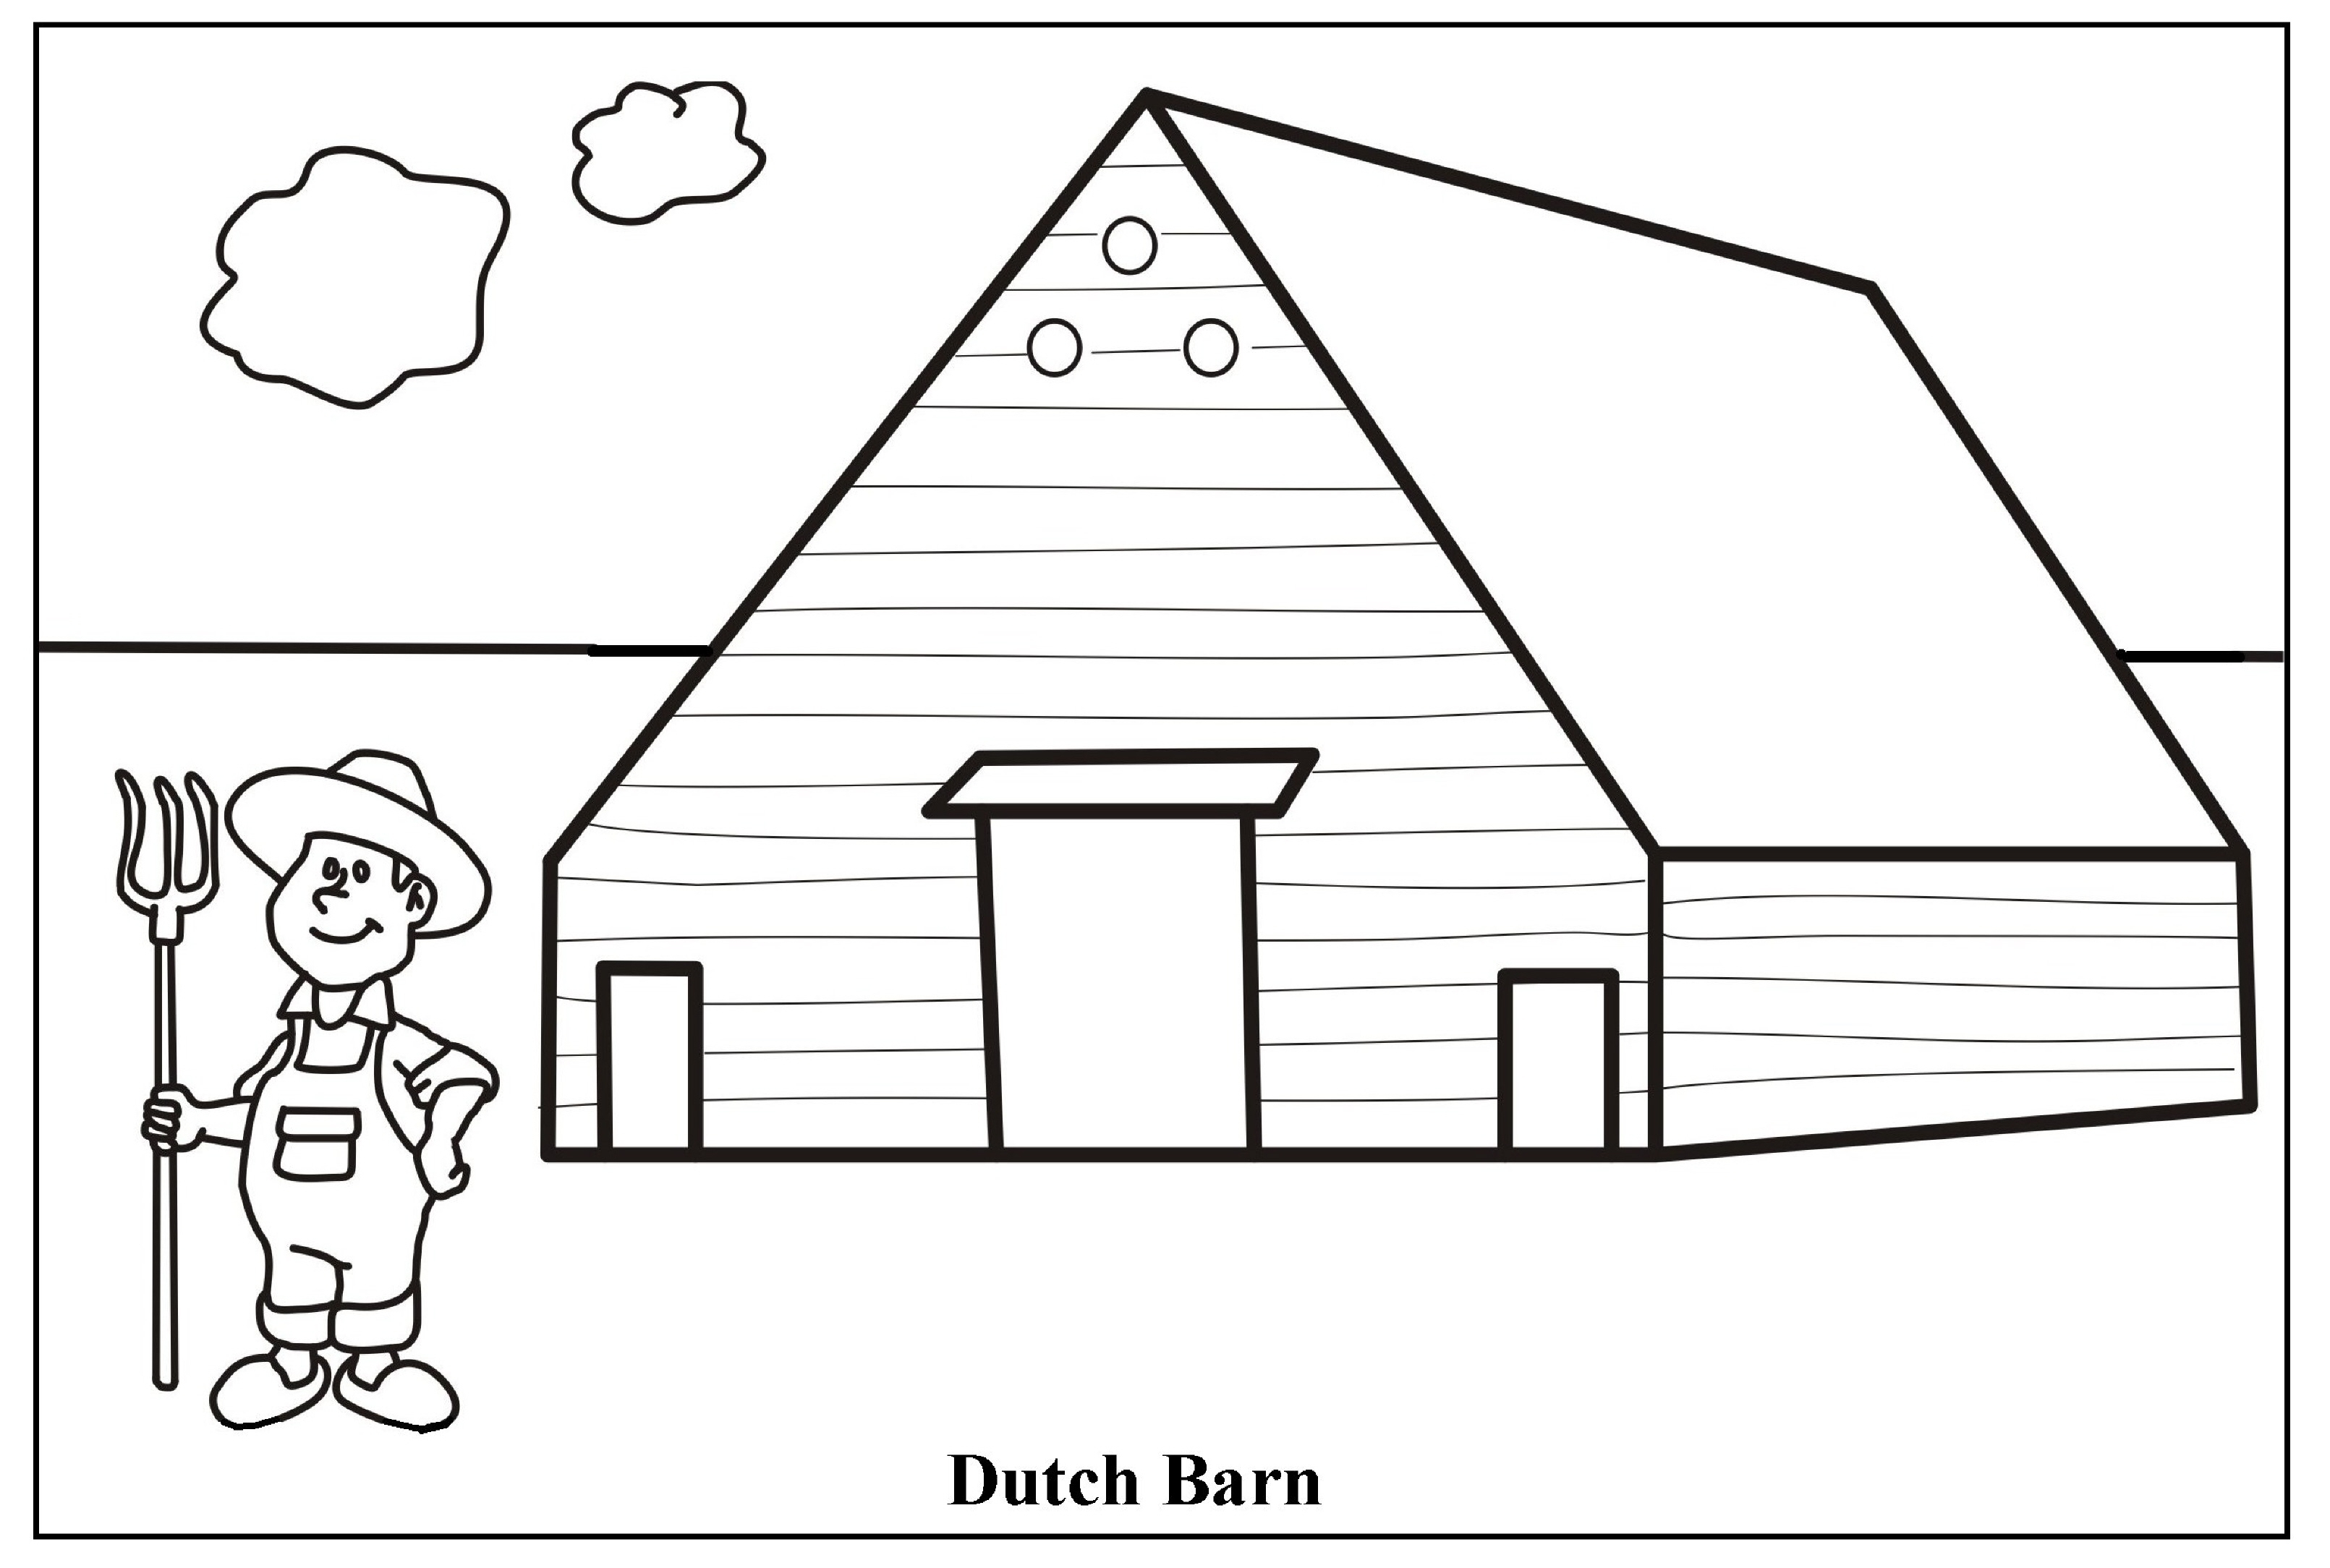 nativity scene coloring pages - farm scene coloring page barn coloring pages barns and farms coloring pages barn coloring